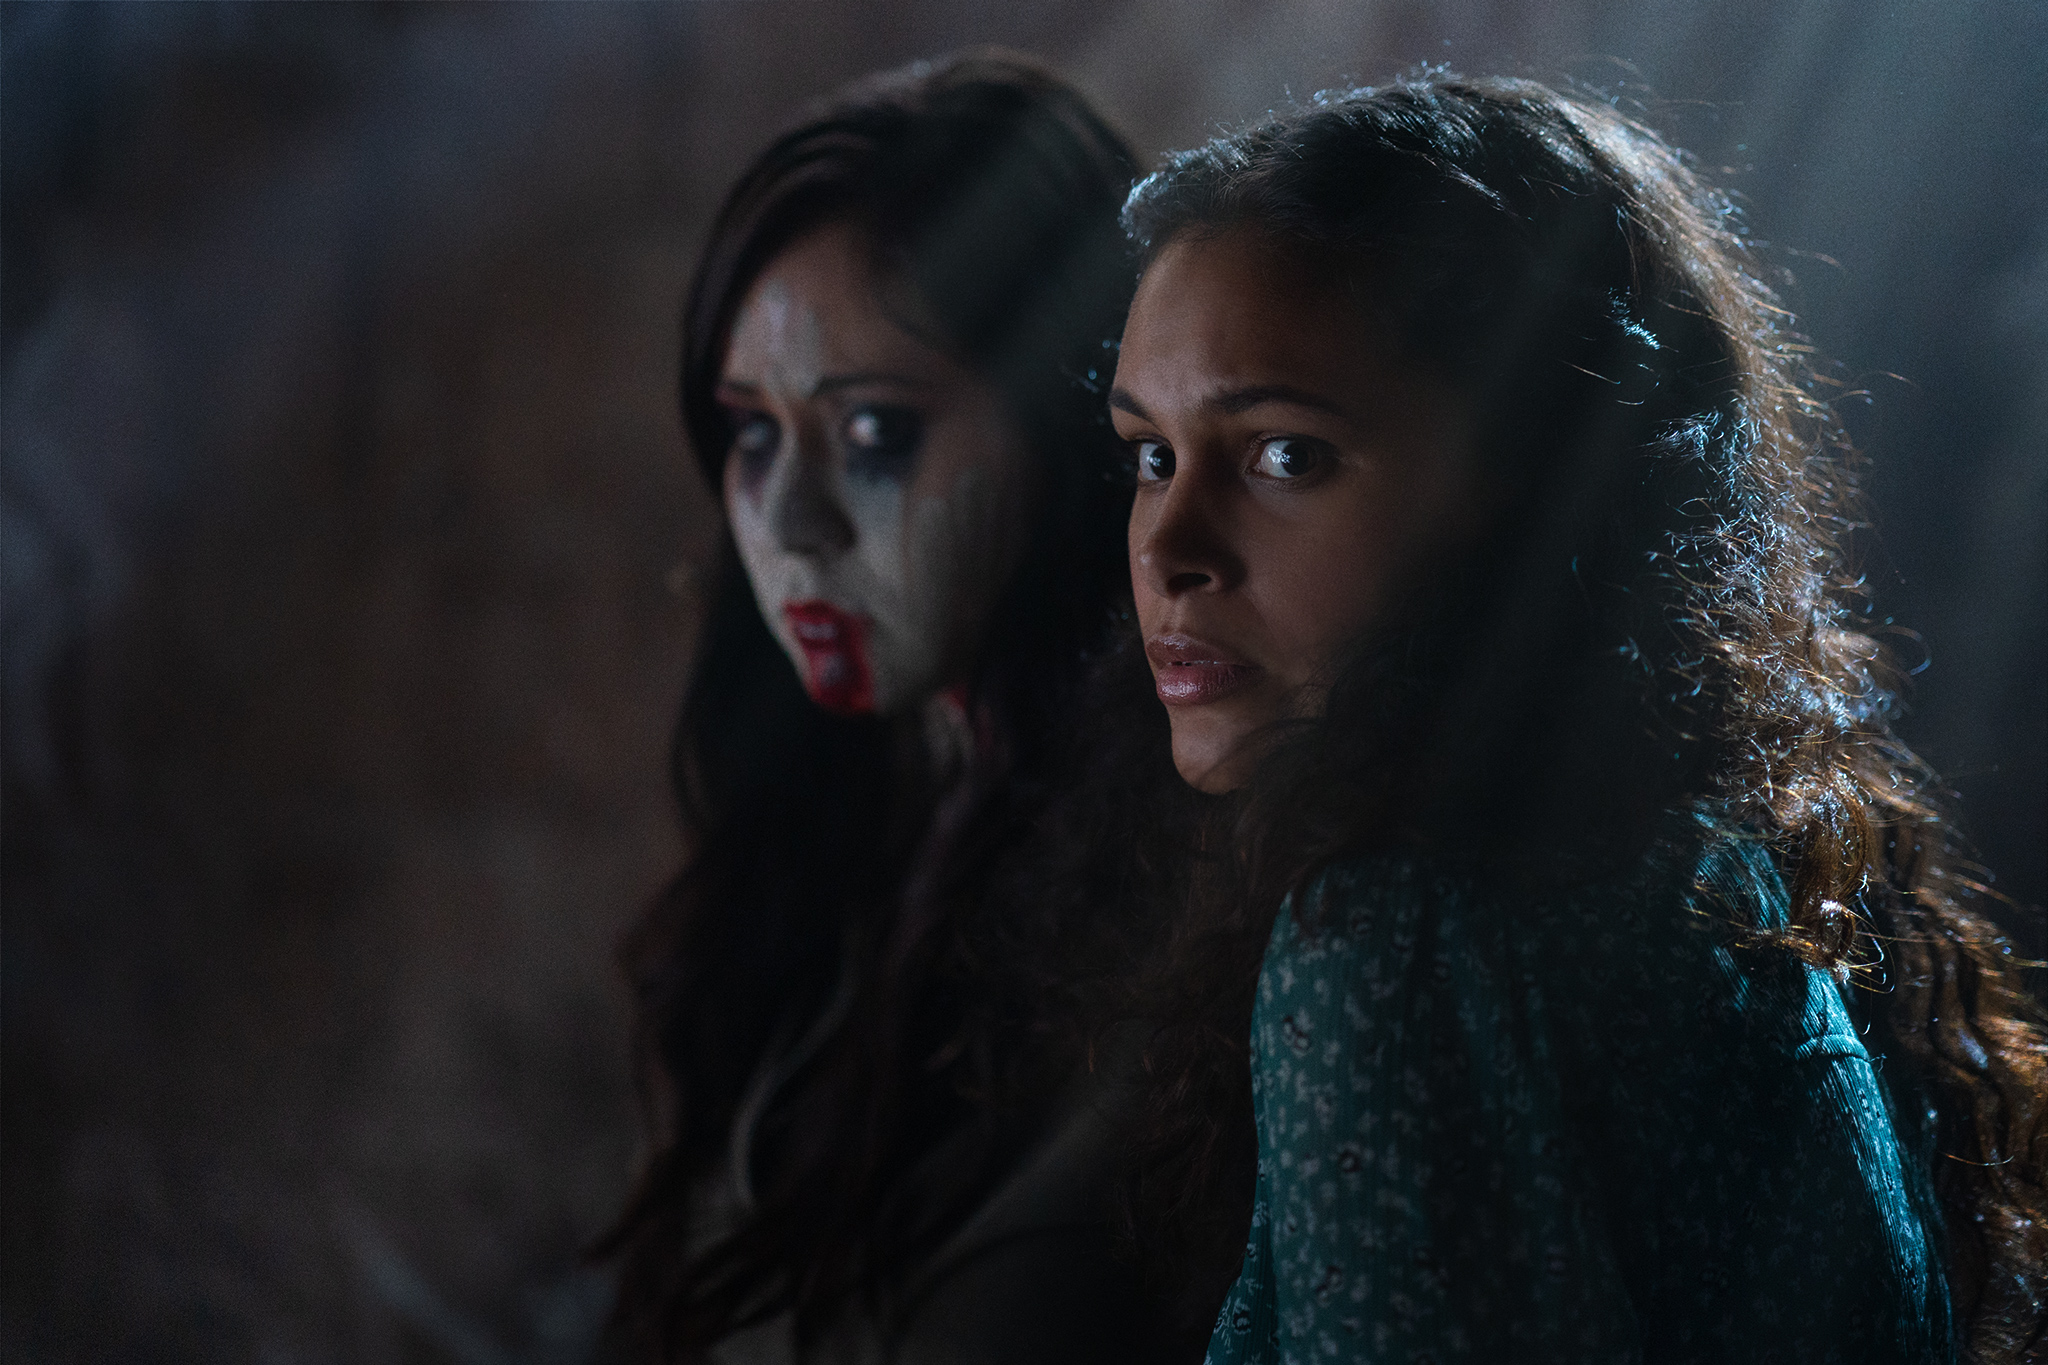 Sitges 2020] 'The Old Ways' brings something new to folk horror - Modern Horrors